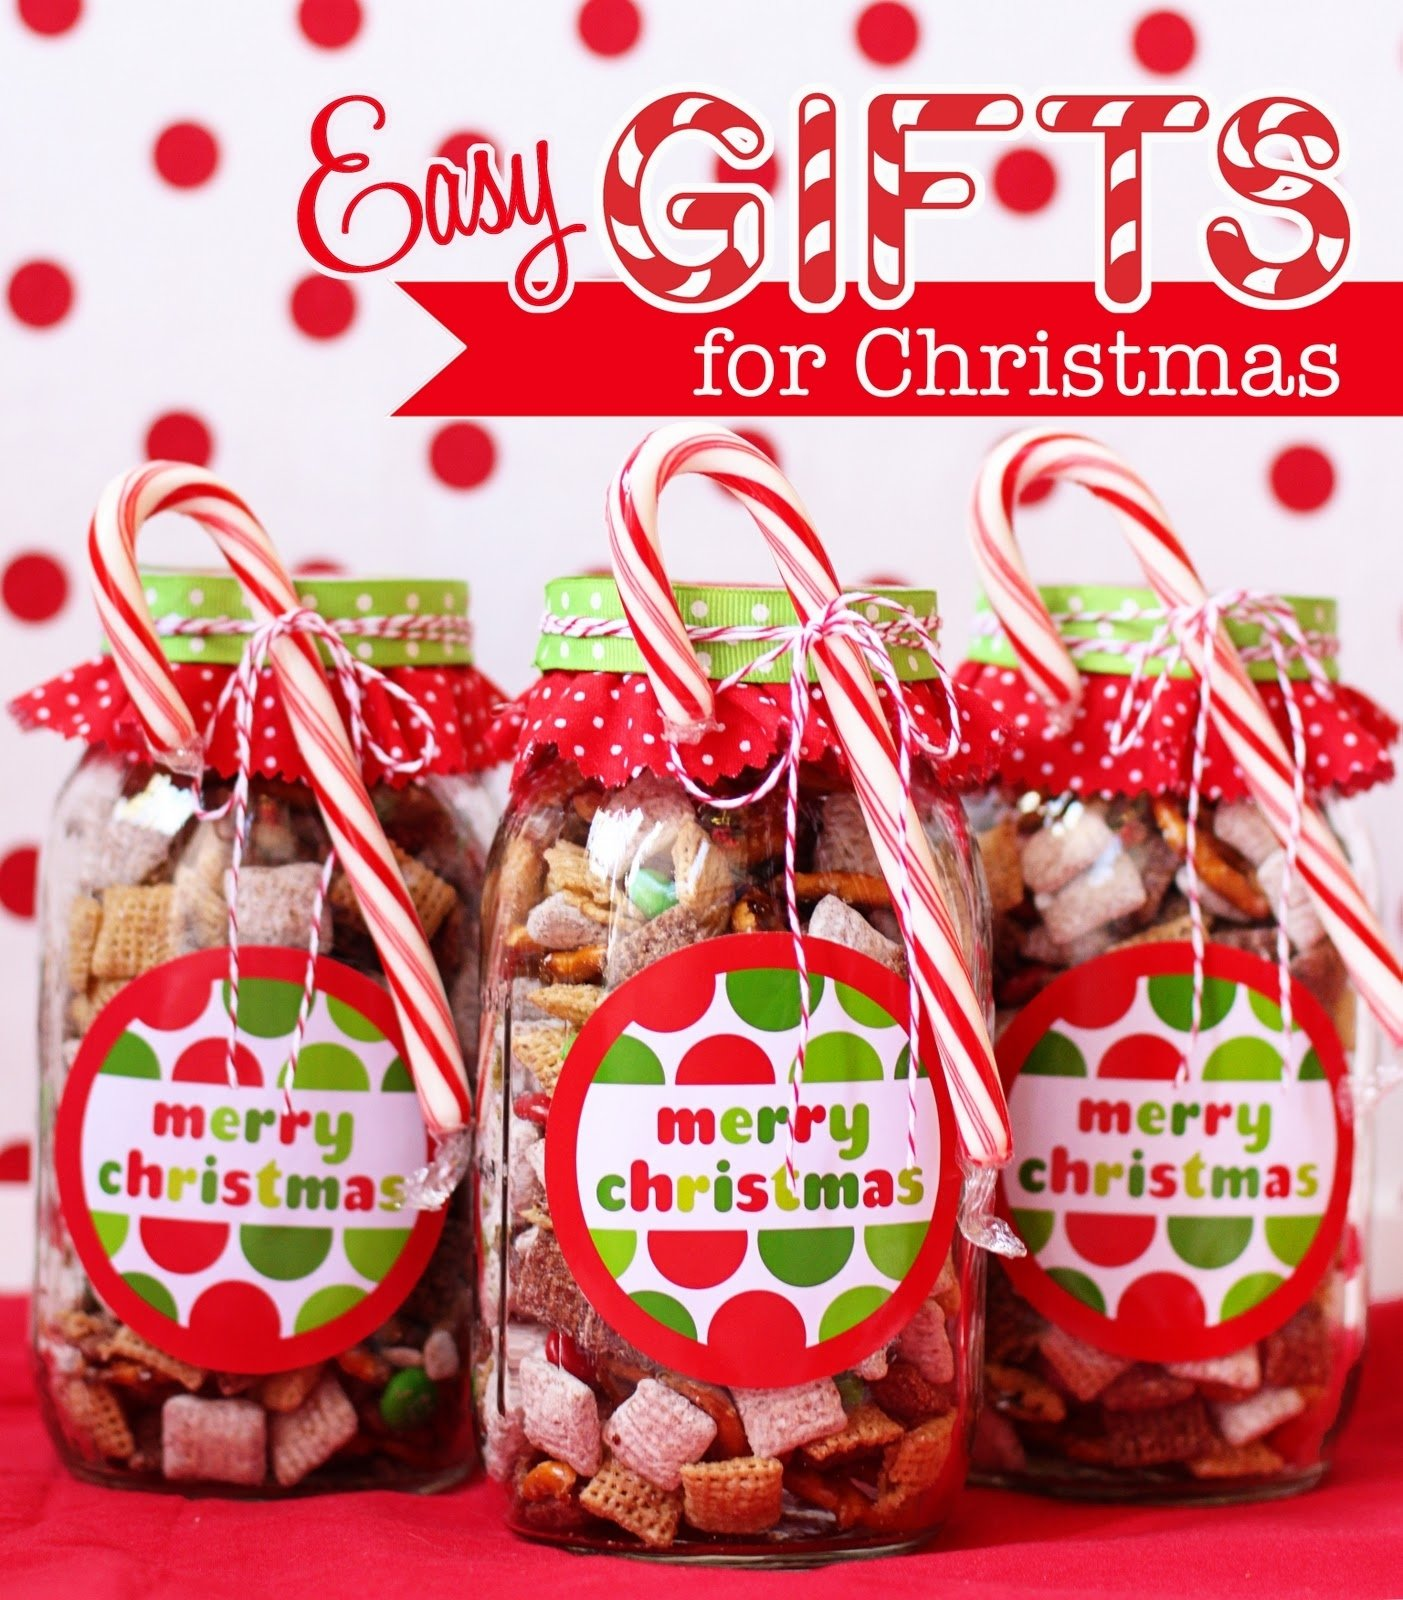 10 Elegant Food Gift Ideas For Christmas 25 edible neighbor gifts the 36th avenue 1 2020